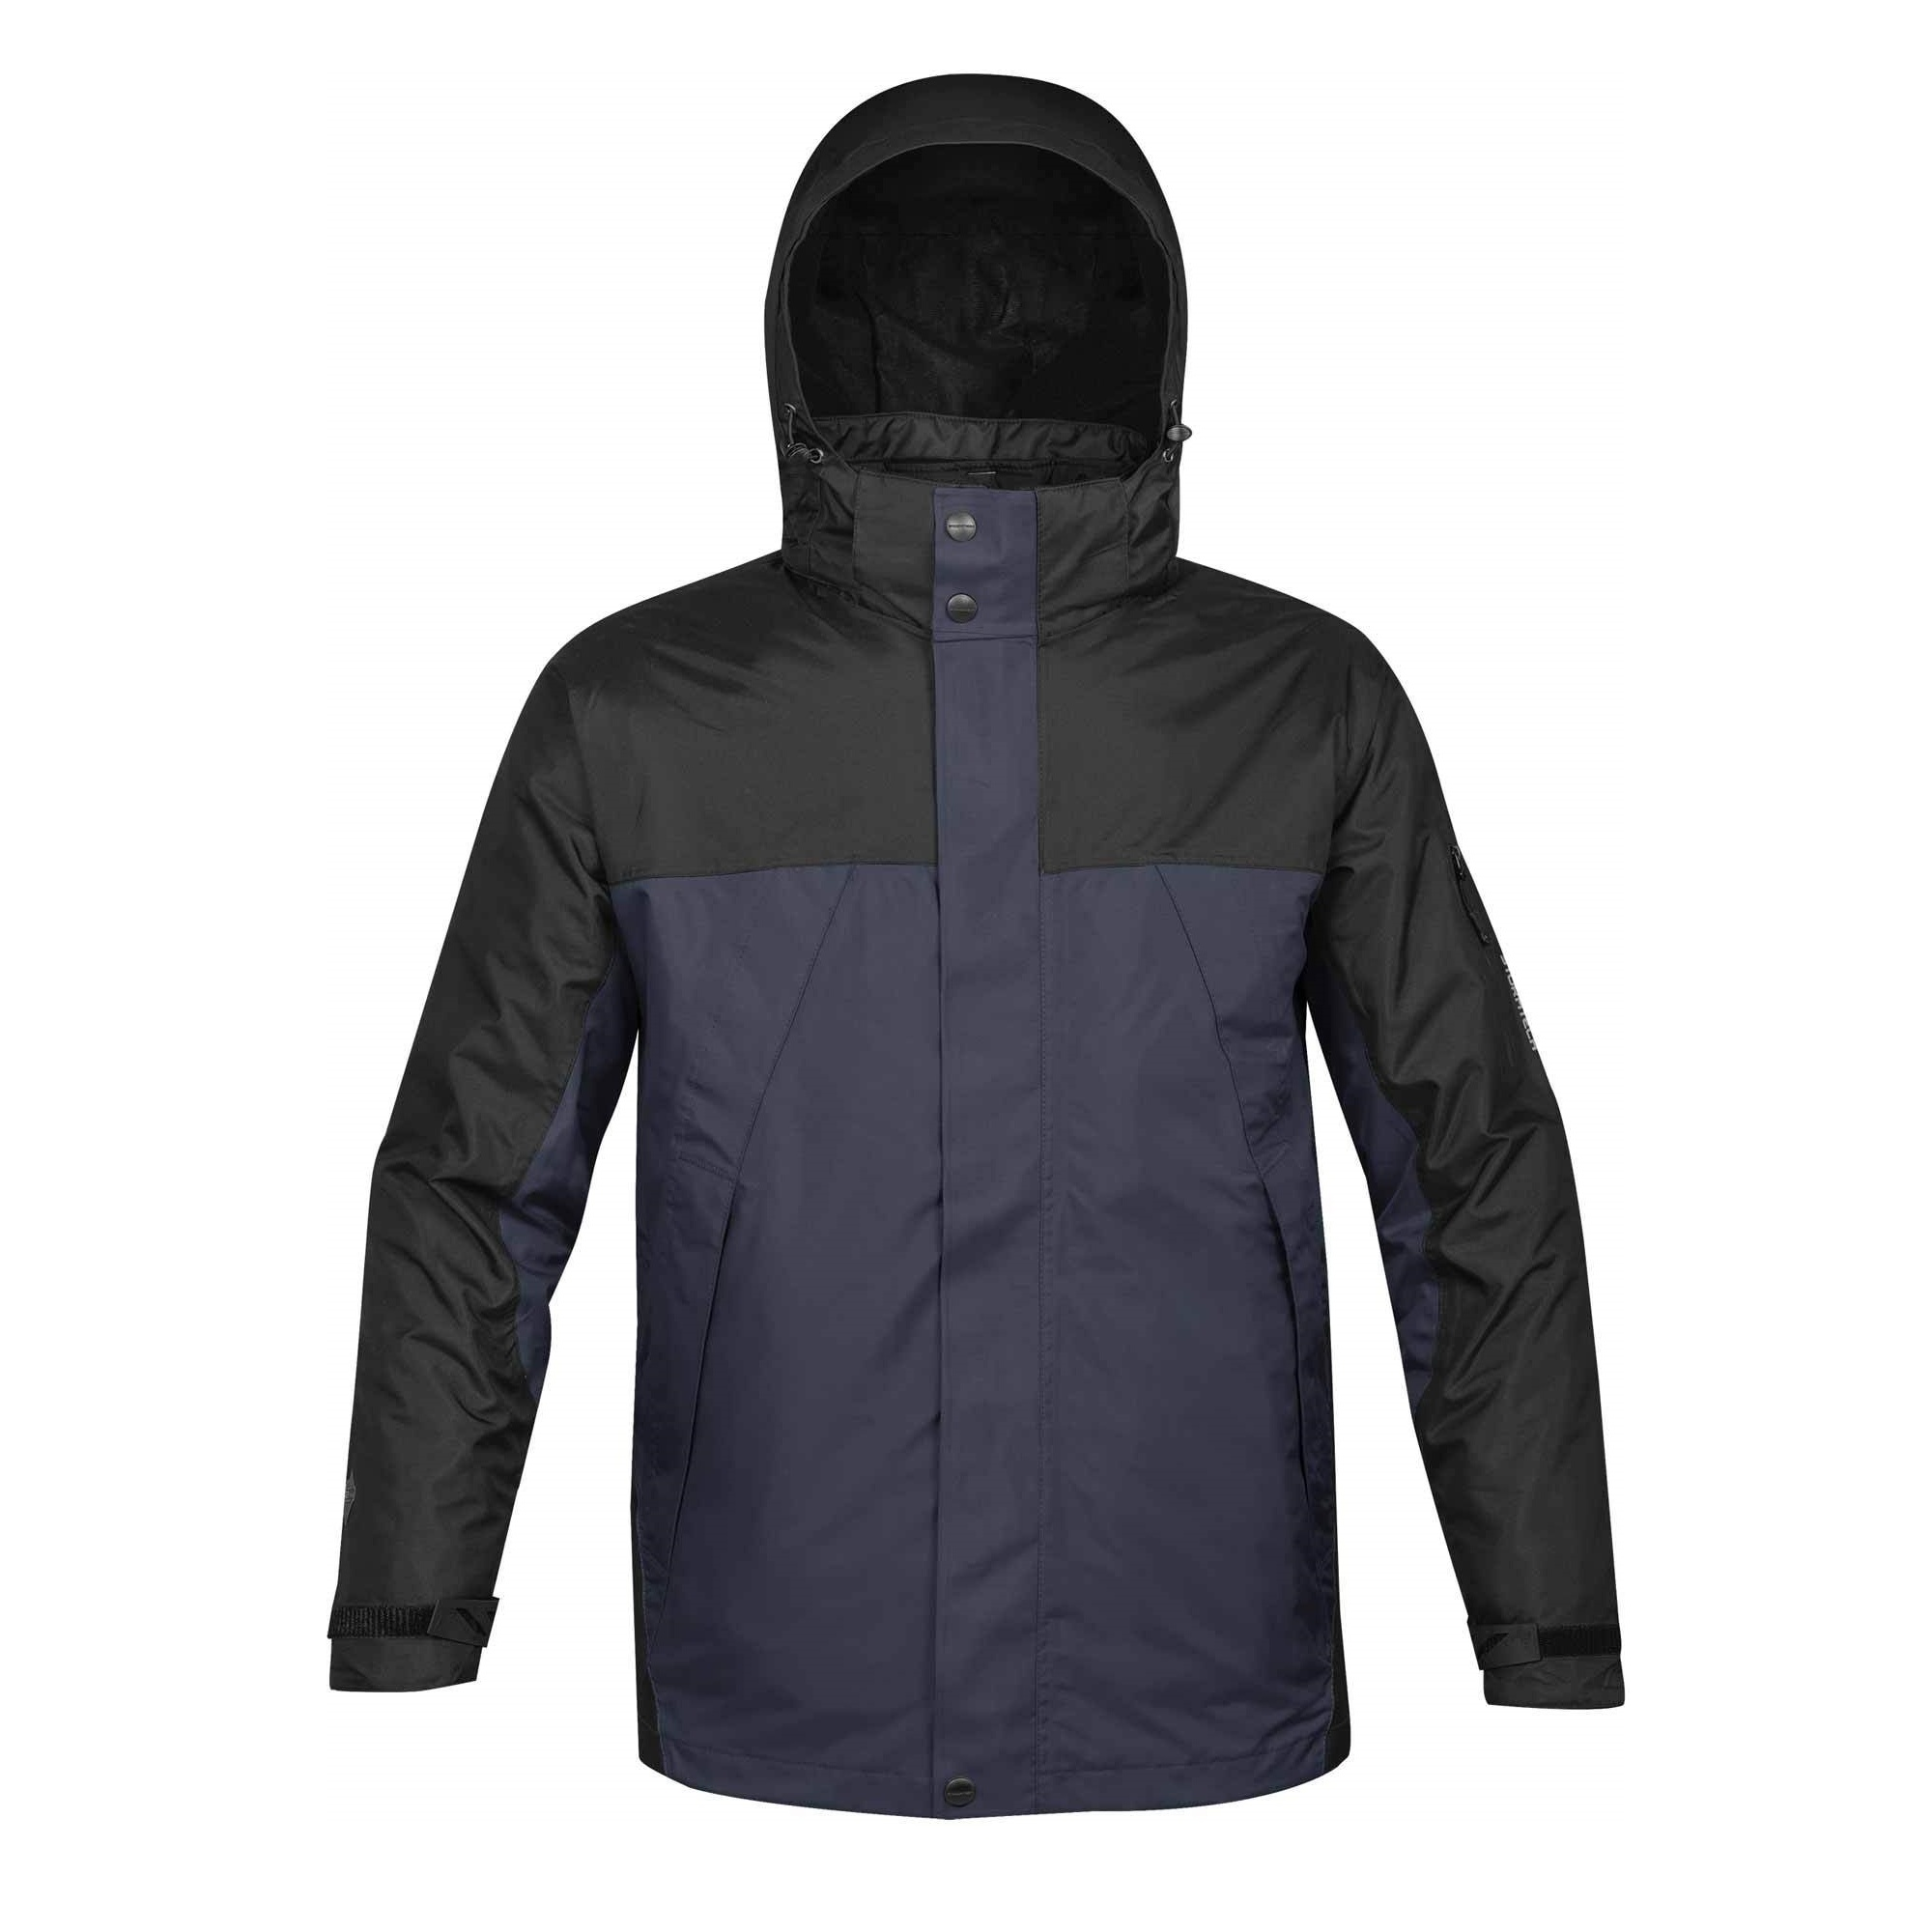 Stormtech Mens Fusion 5 In 1 System Parka Hooded Waterproof Breathable Jacket (XL) (Navy/Black)